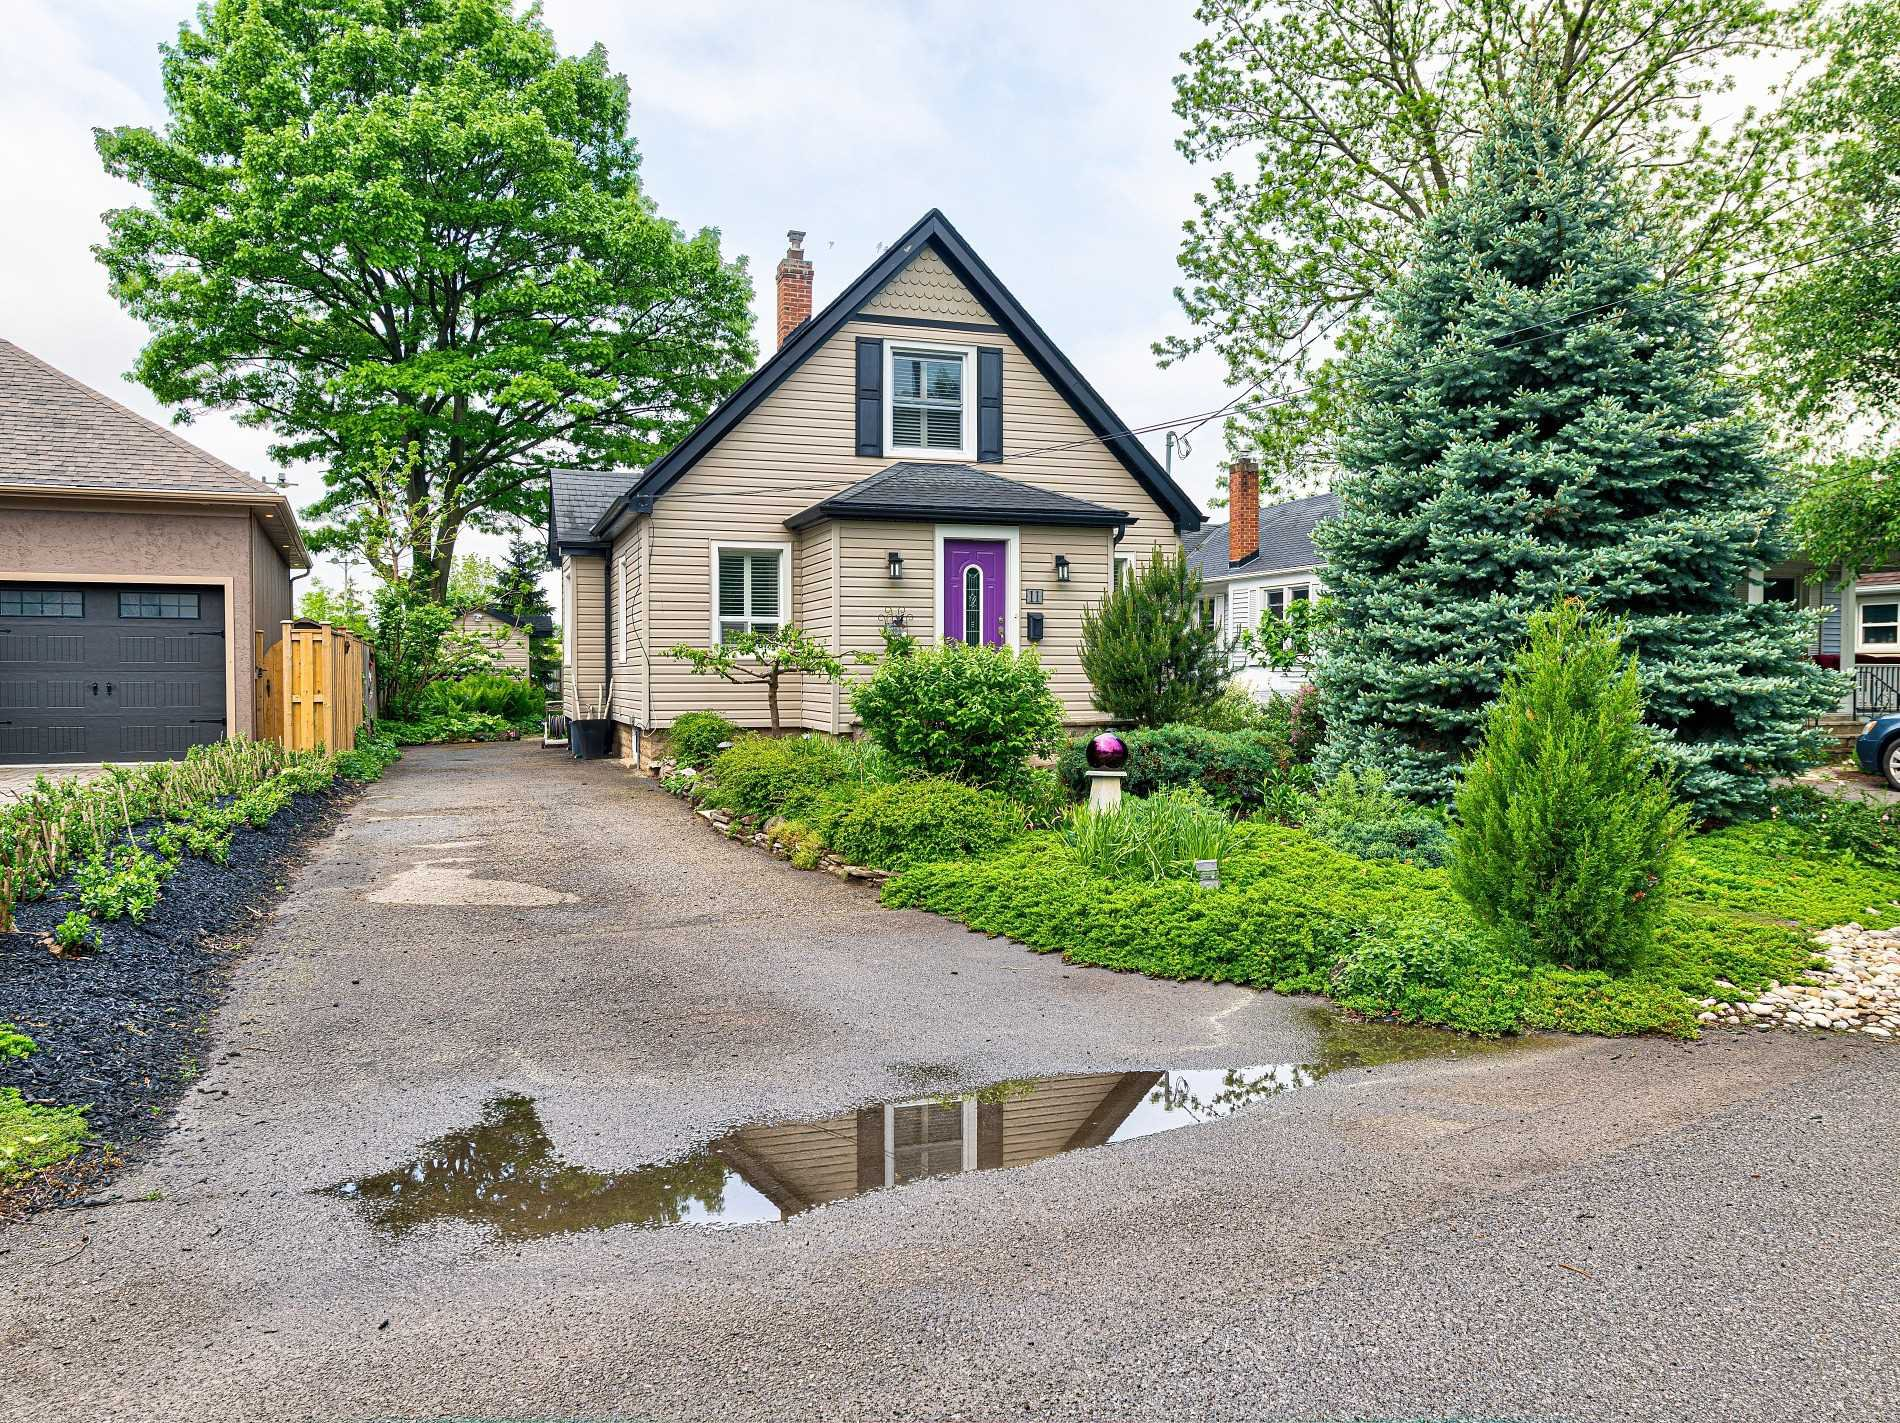 Main Photo: 11 Verdun Avenue in St. Catharines: House (2-Storey) for sale : MLS®# X4777467